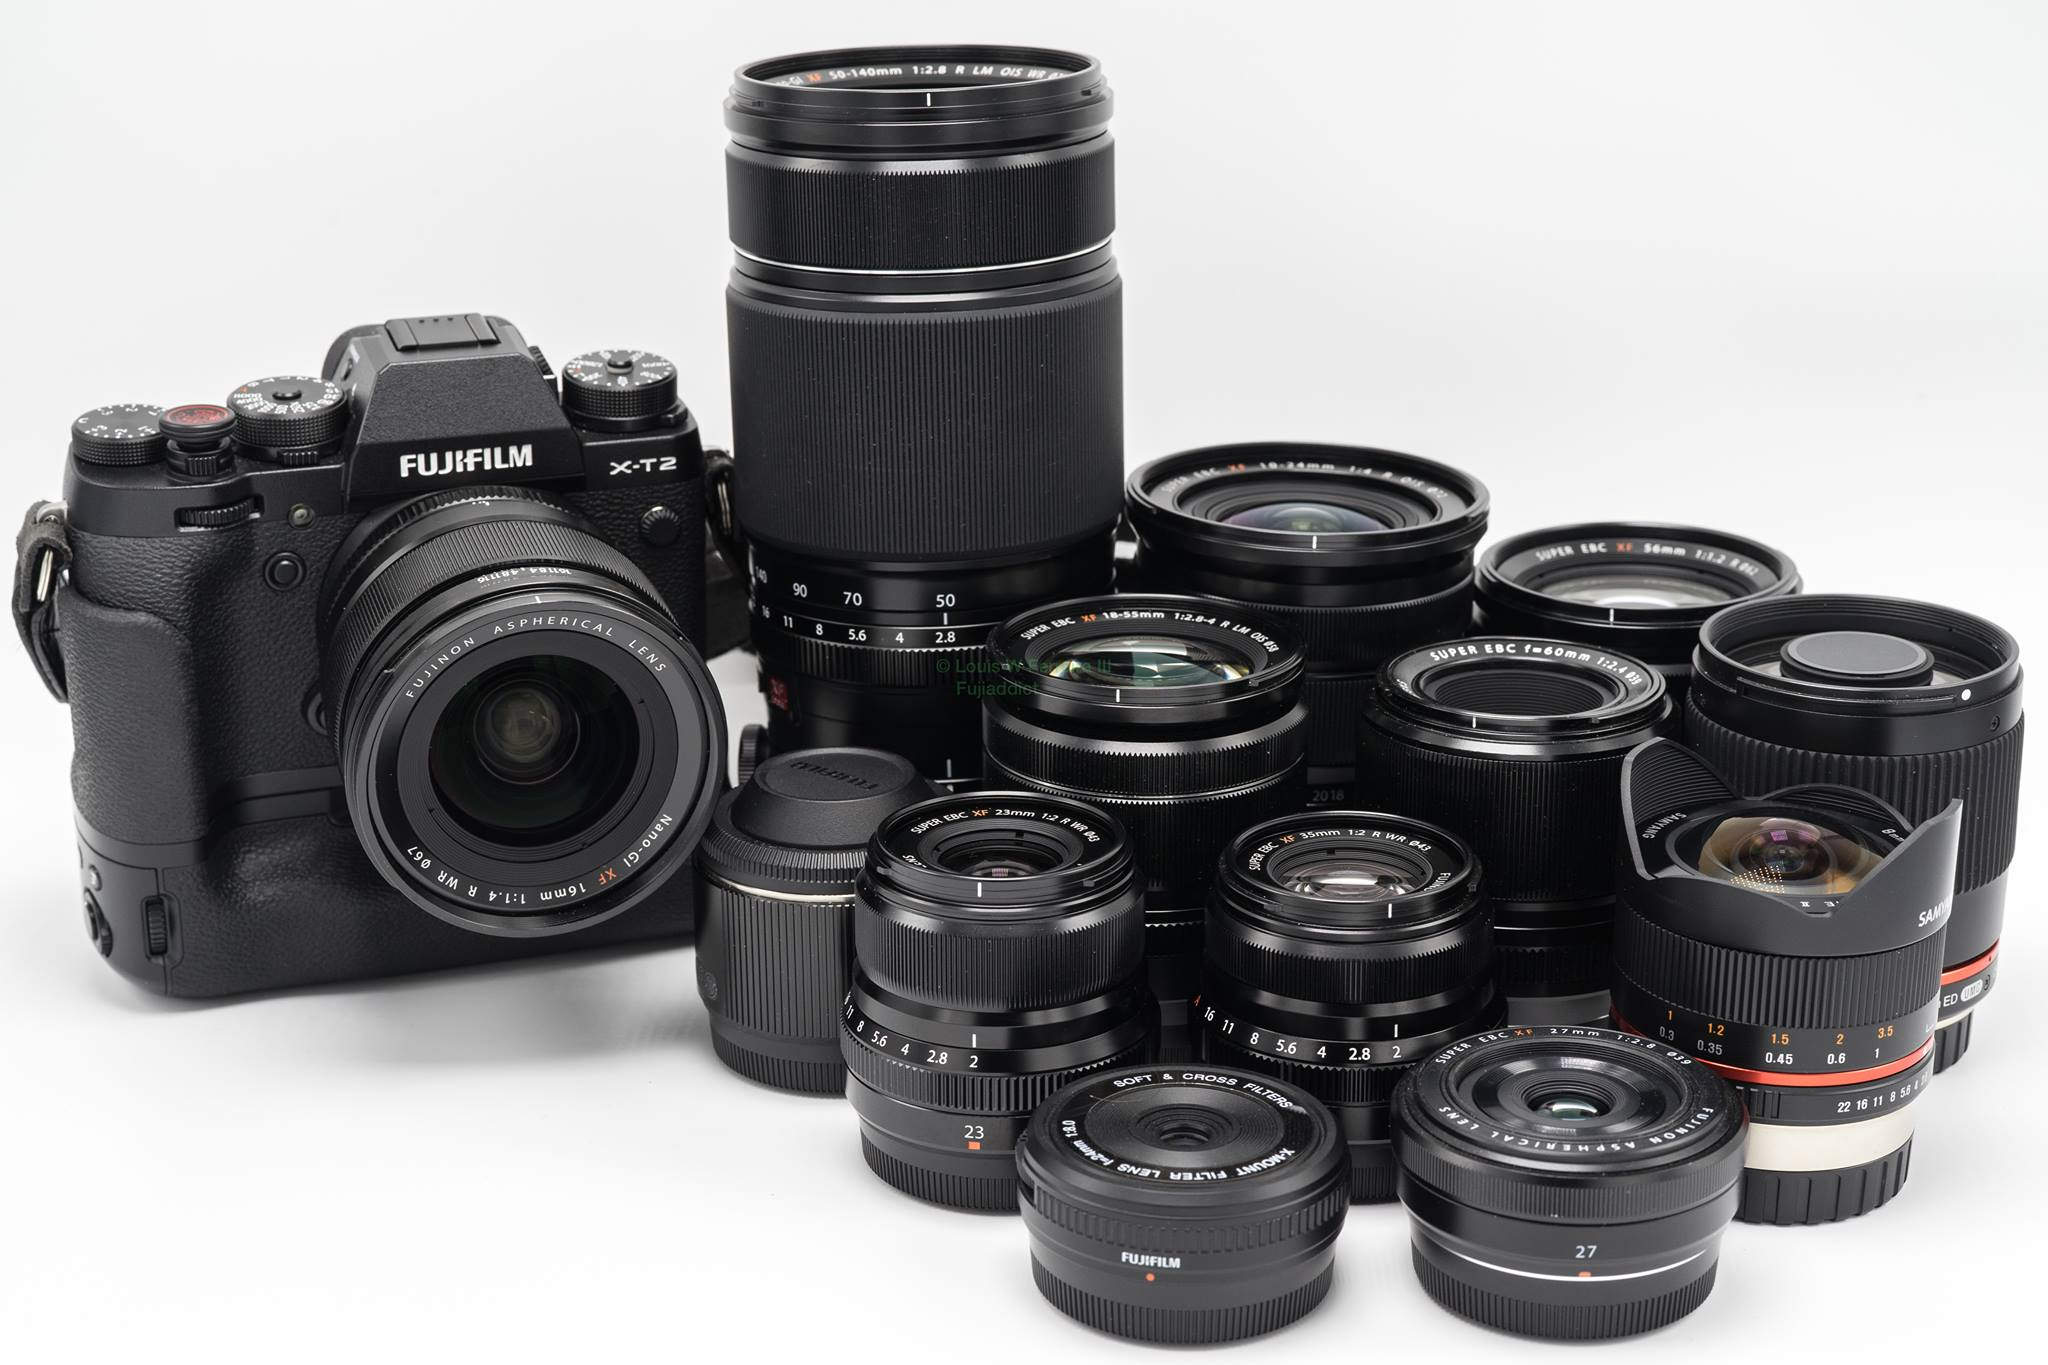 Fuji Rolls Back The Last X T2 Firmware Update Due To Fujifilm Body Black Released Version 401 For Camera That Basically Rolled Previous 40 Several